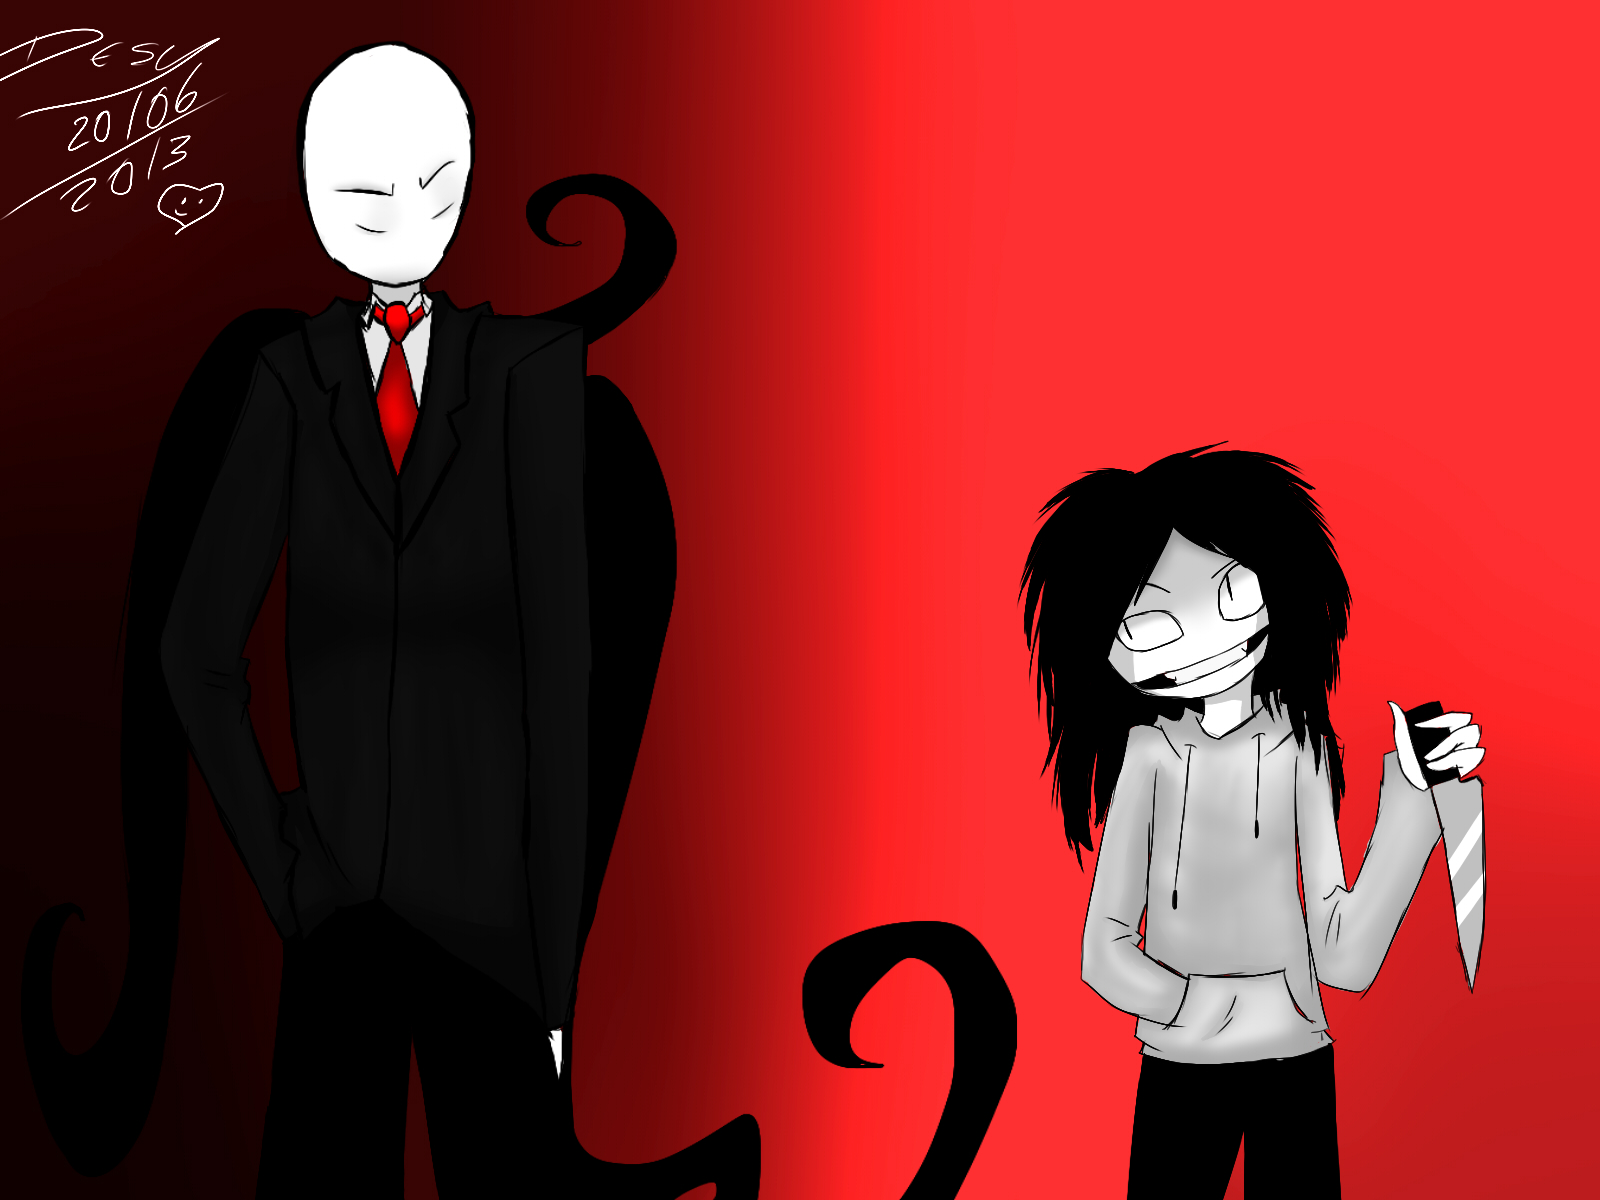 Jeff The killer e Slenderman by Desy017